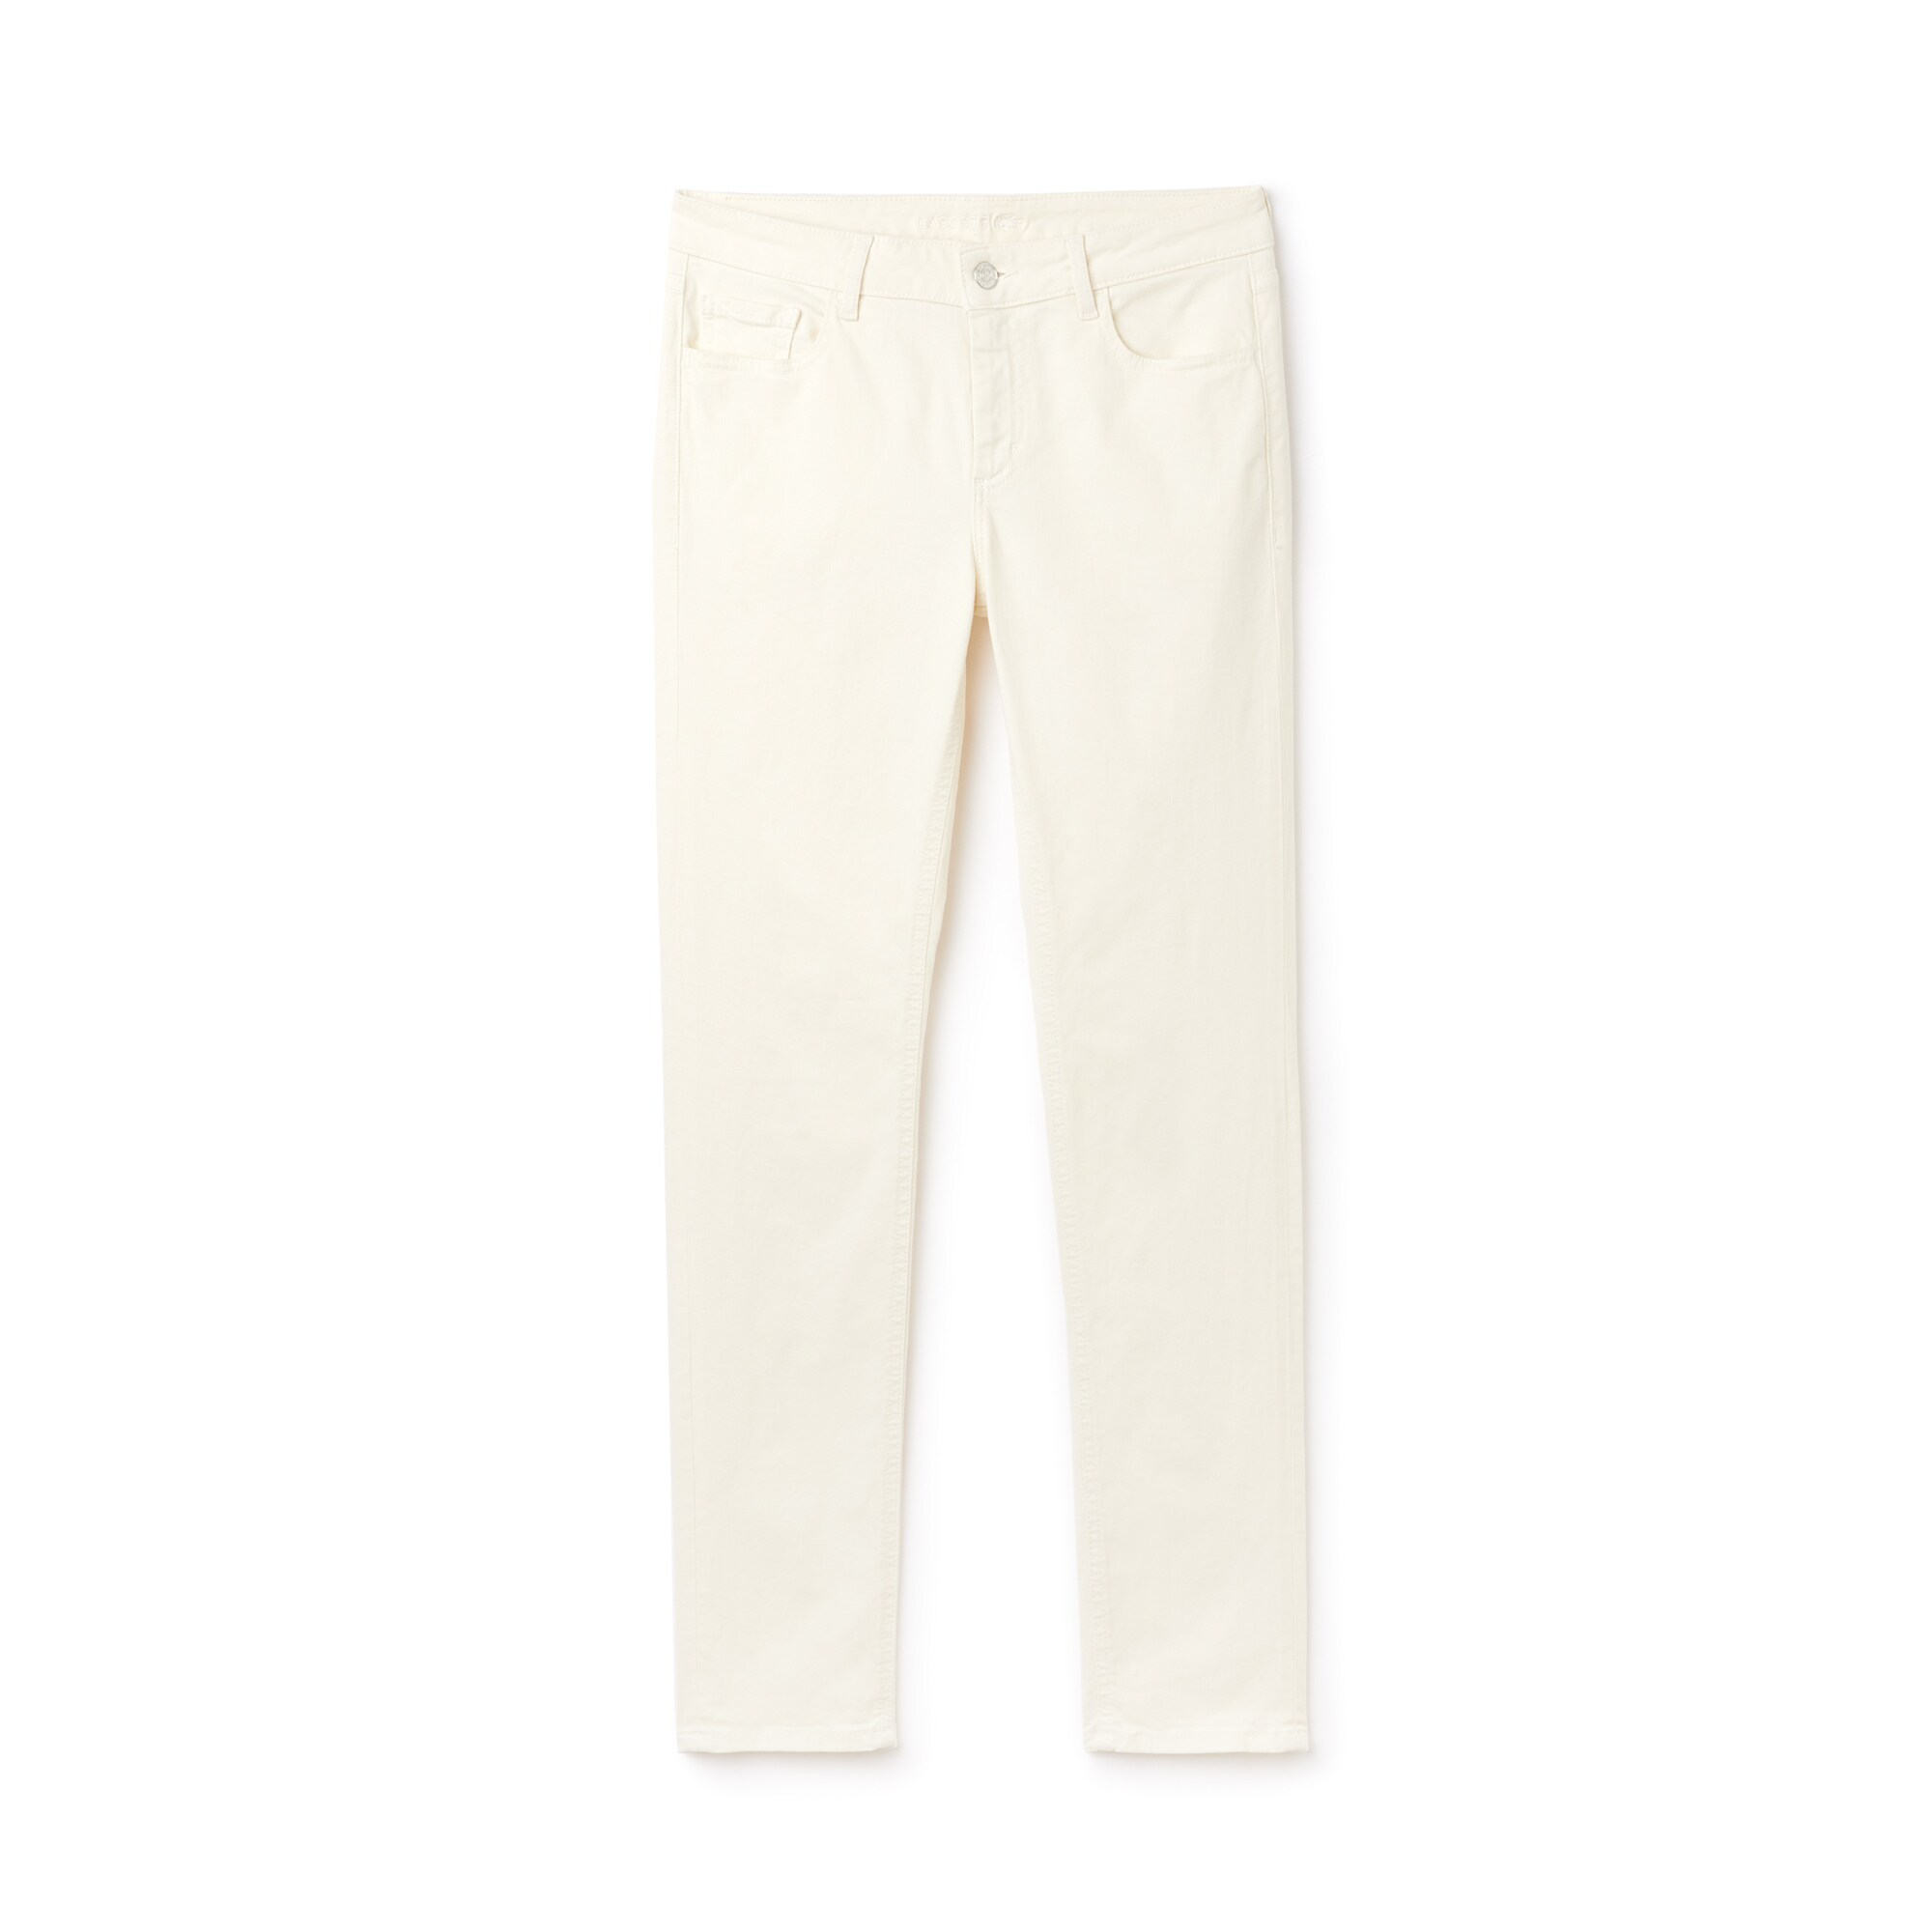 Lacoste Women's Trousers